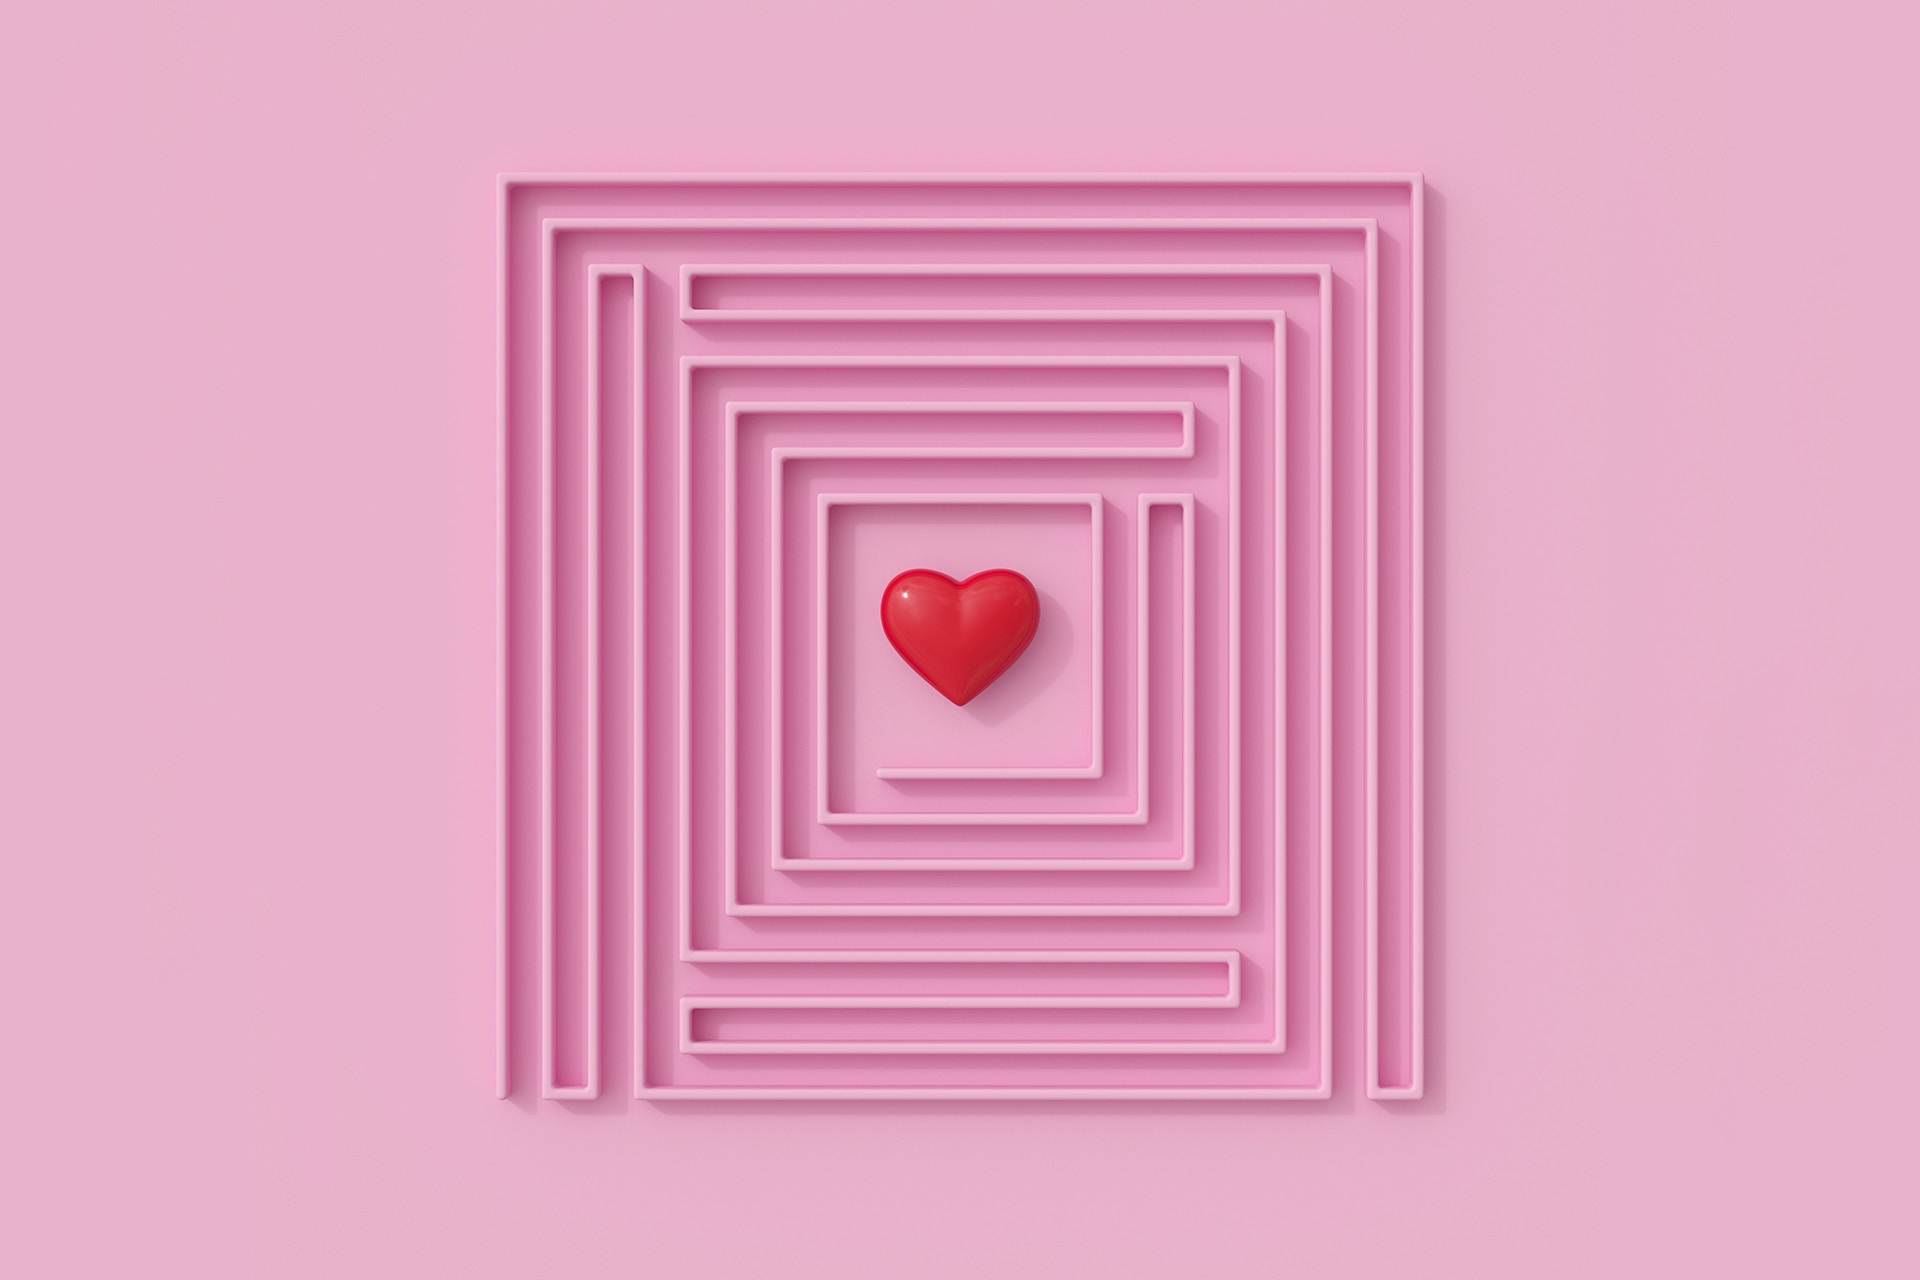 Customer loyalty is hard to achieve, and this image of a maze from above with a heart in the center perfectly represents the tireless journey marketers must embark on to achieve customer loyalty.